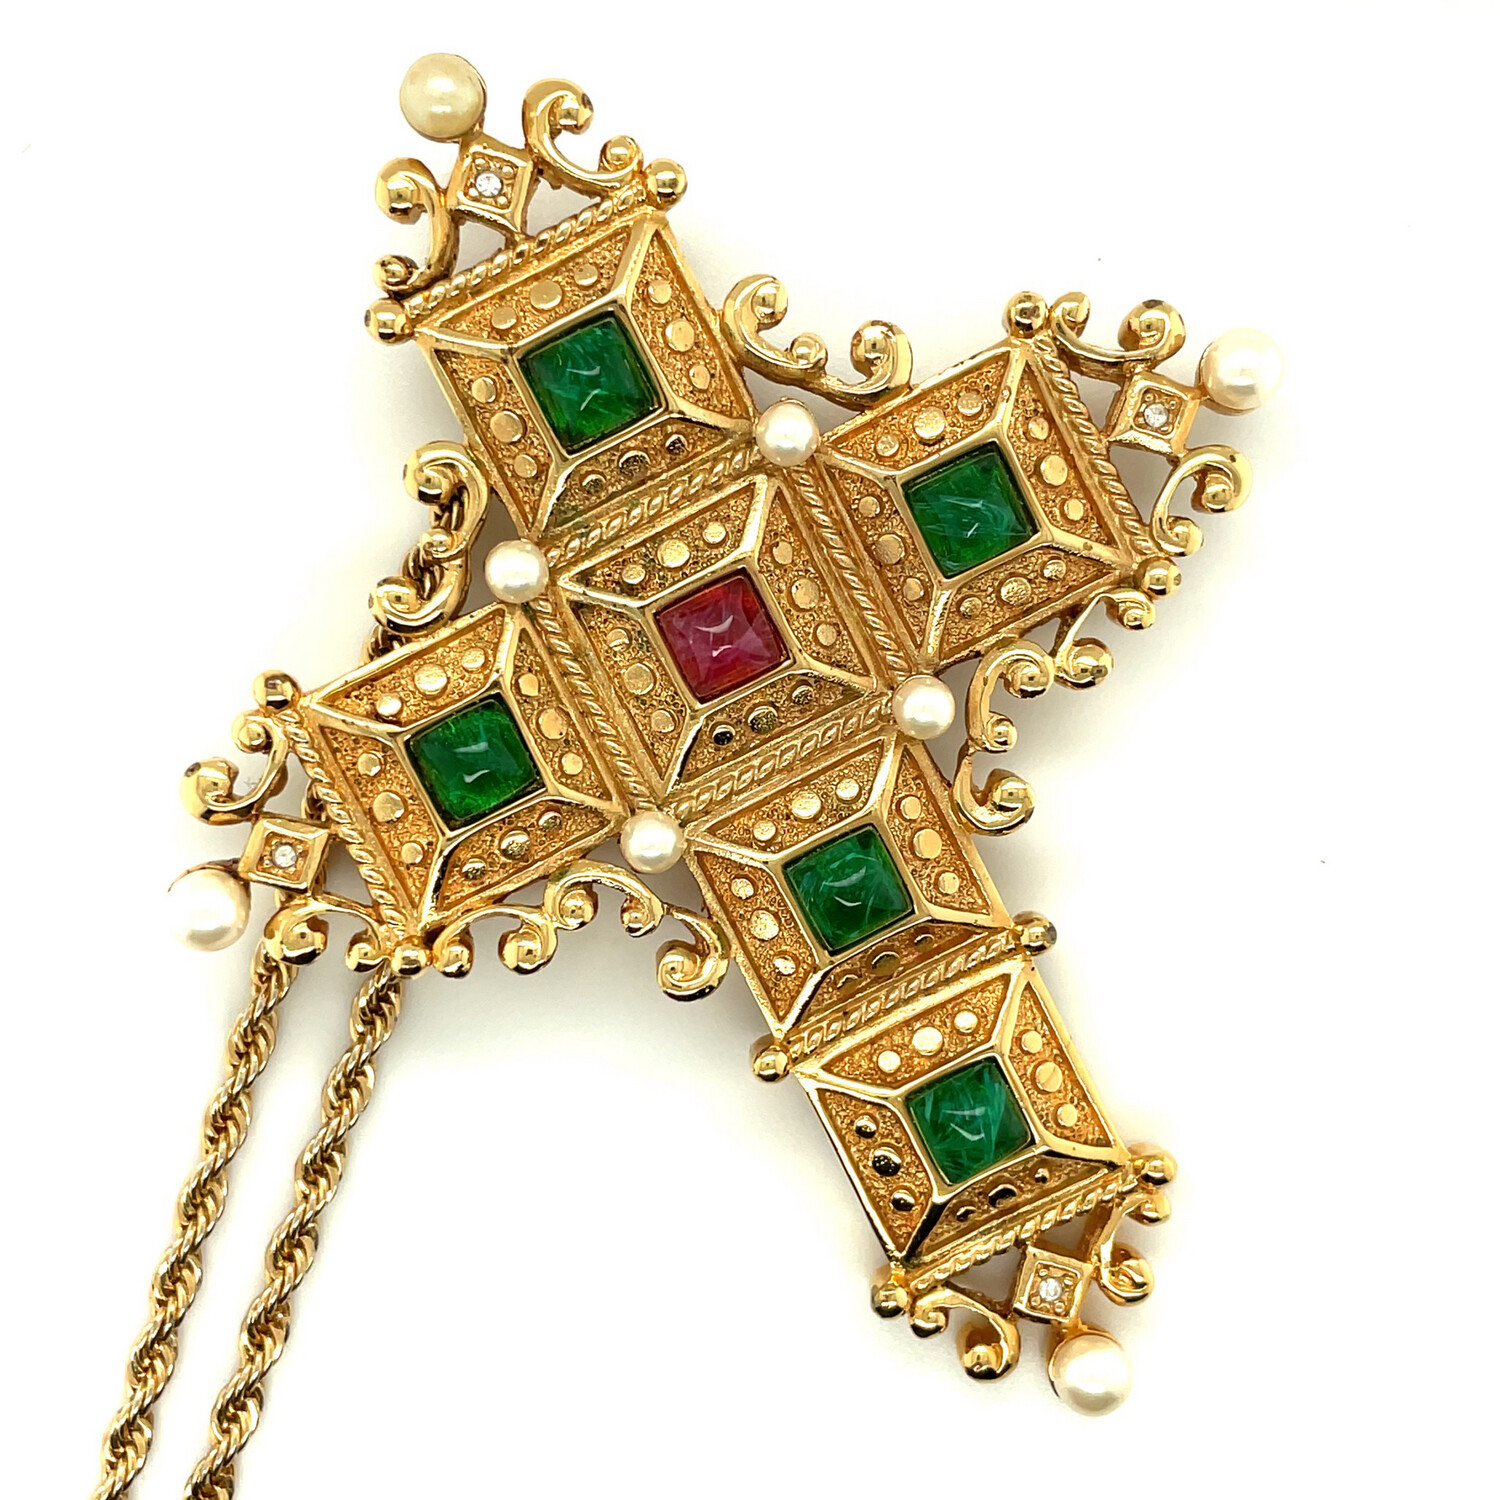 Vintage Christian Dior Collectible Cross Necklace and brooch 1980's